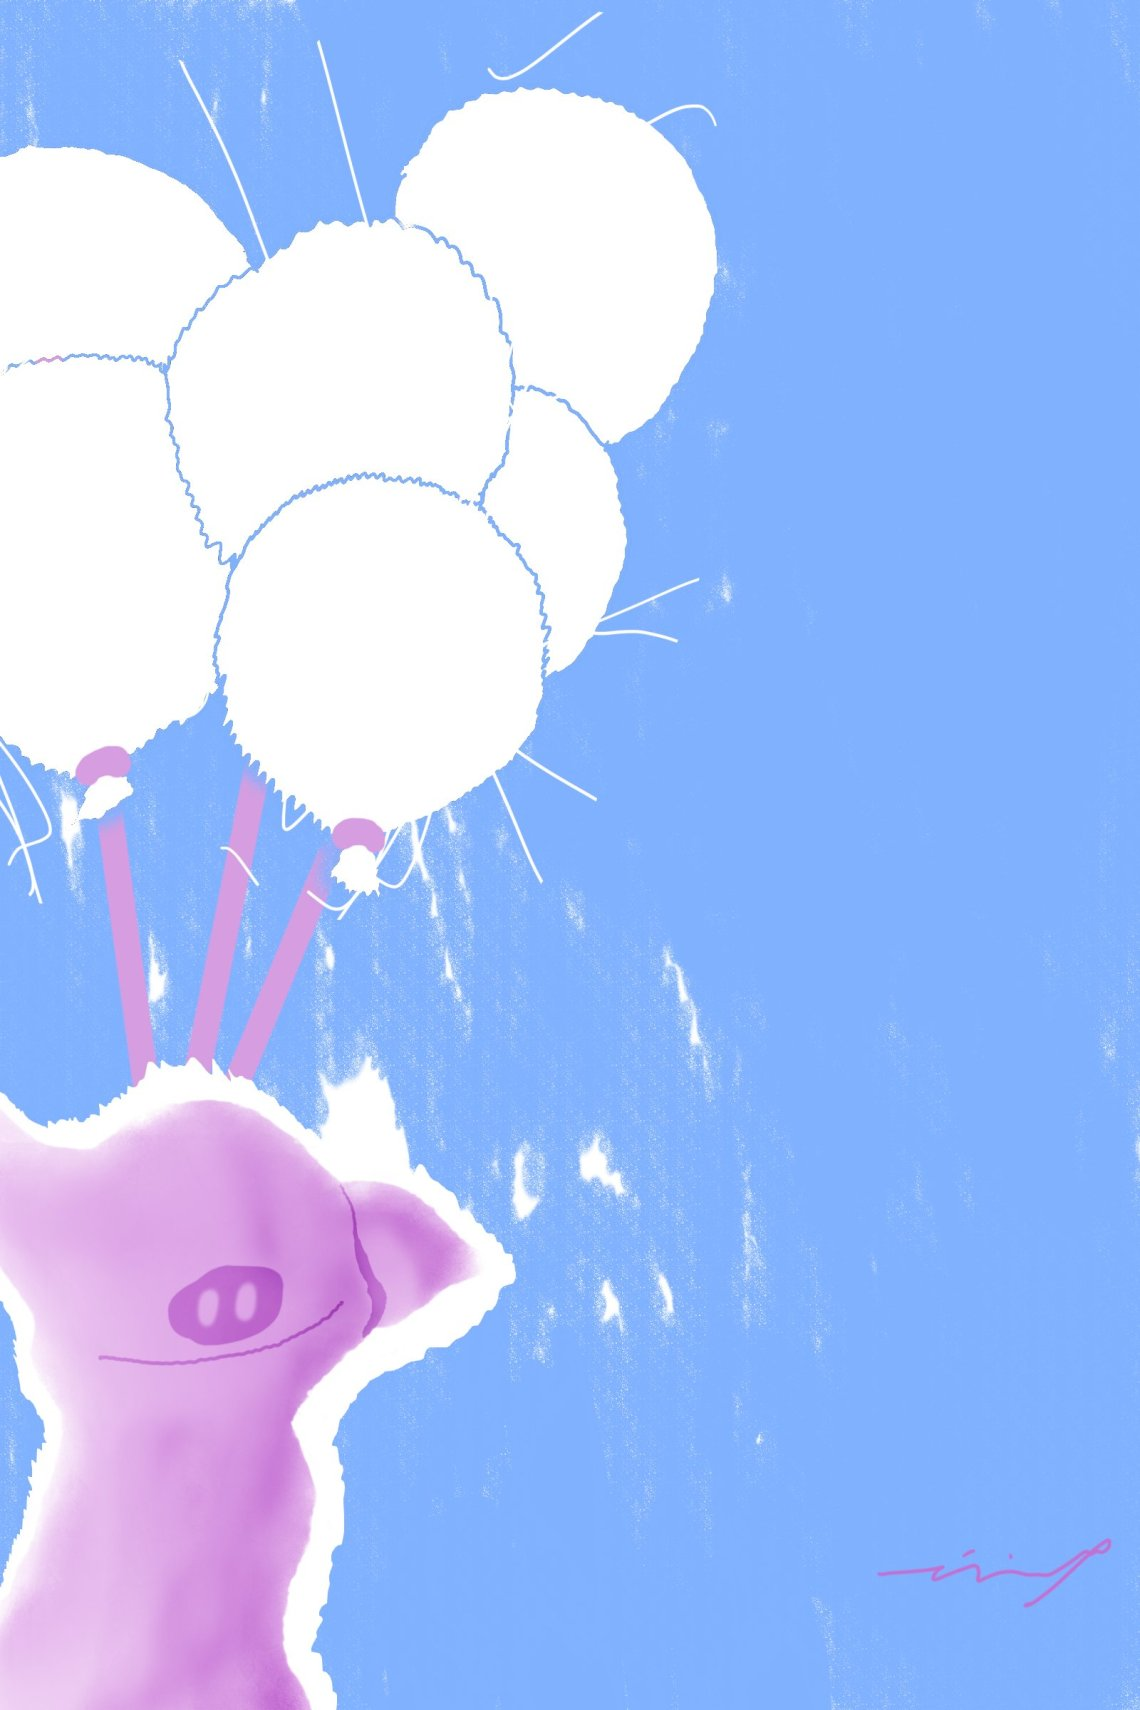 Abstract digital art of smiling pig and balloons